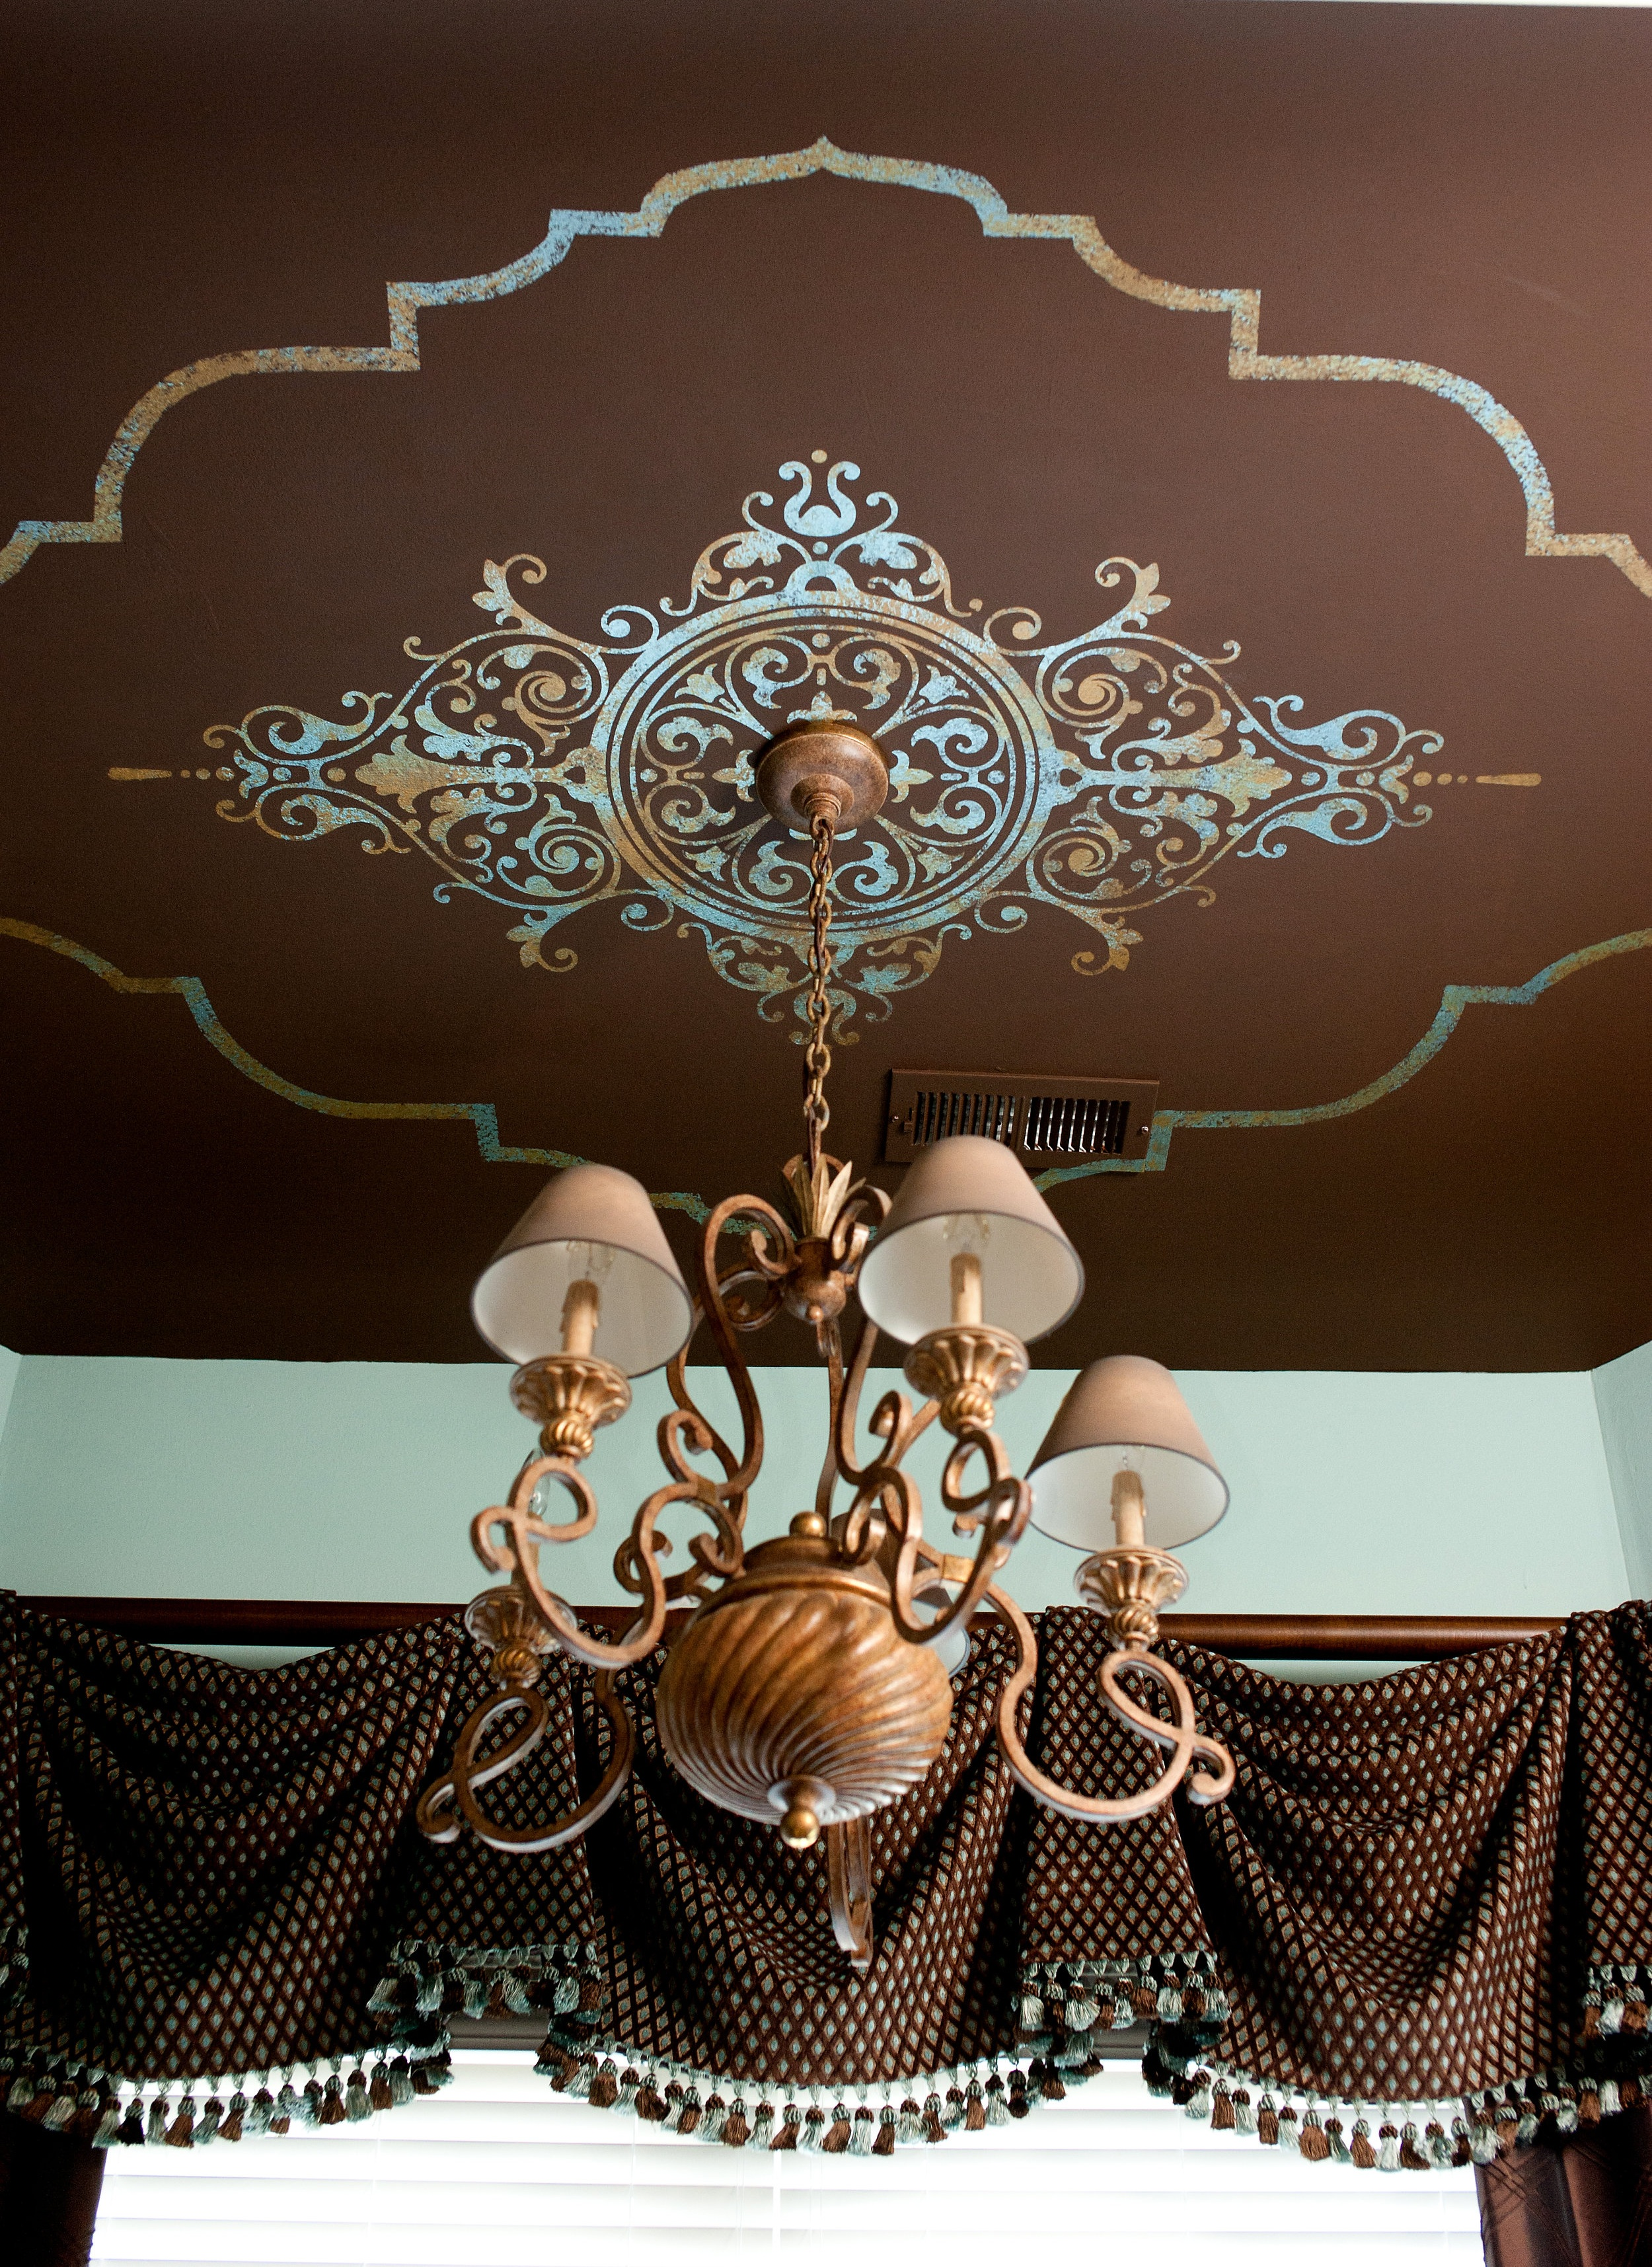 Guest roonm design with ceiling mural.jpg